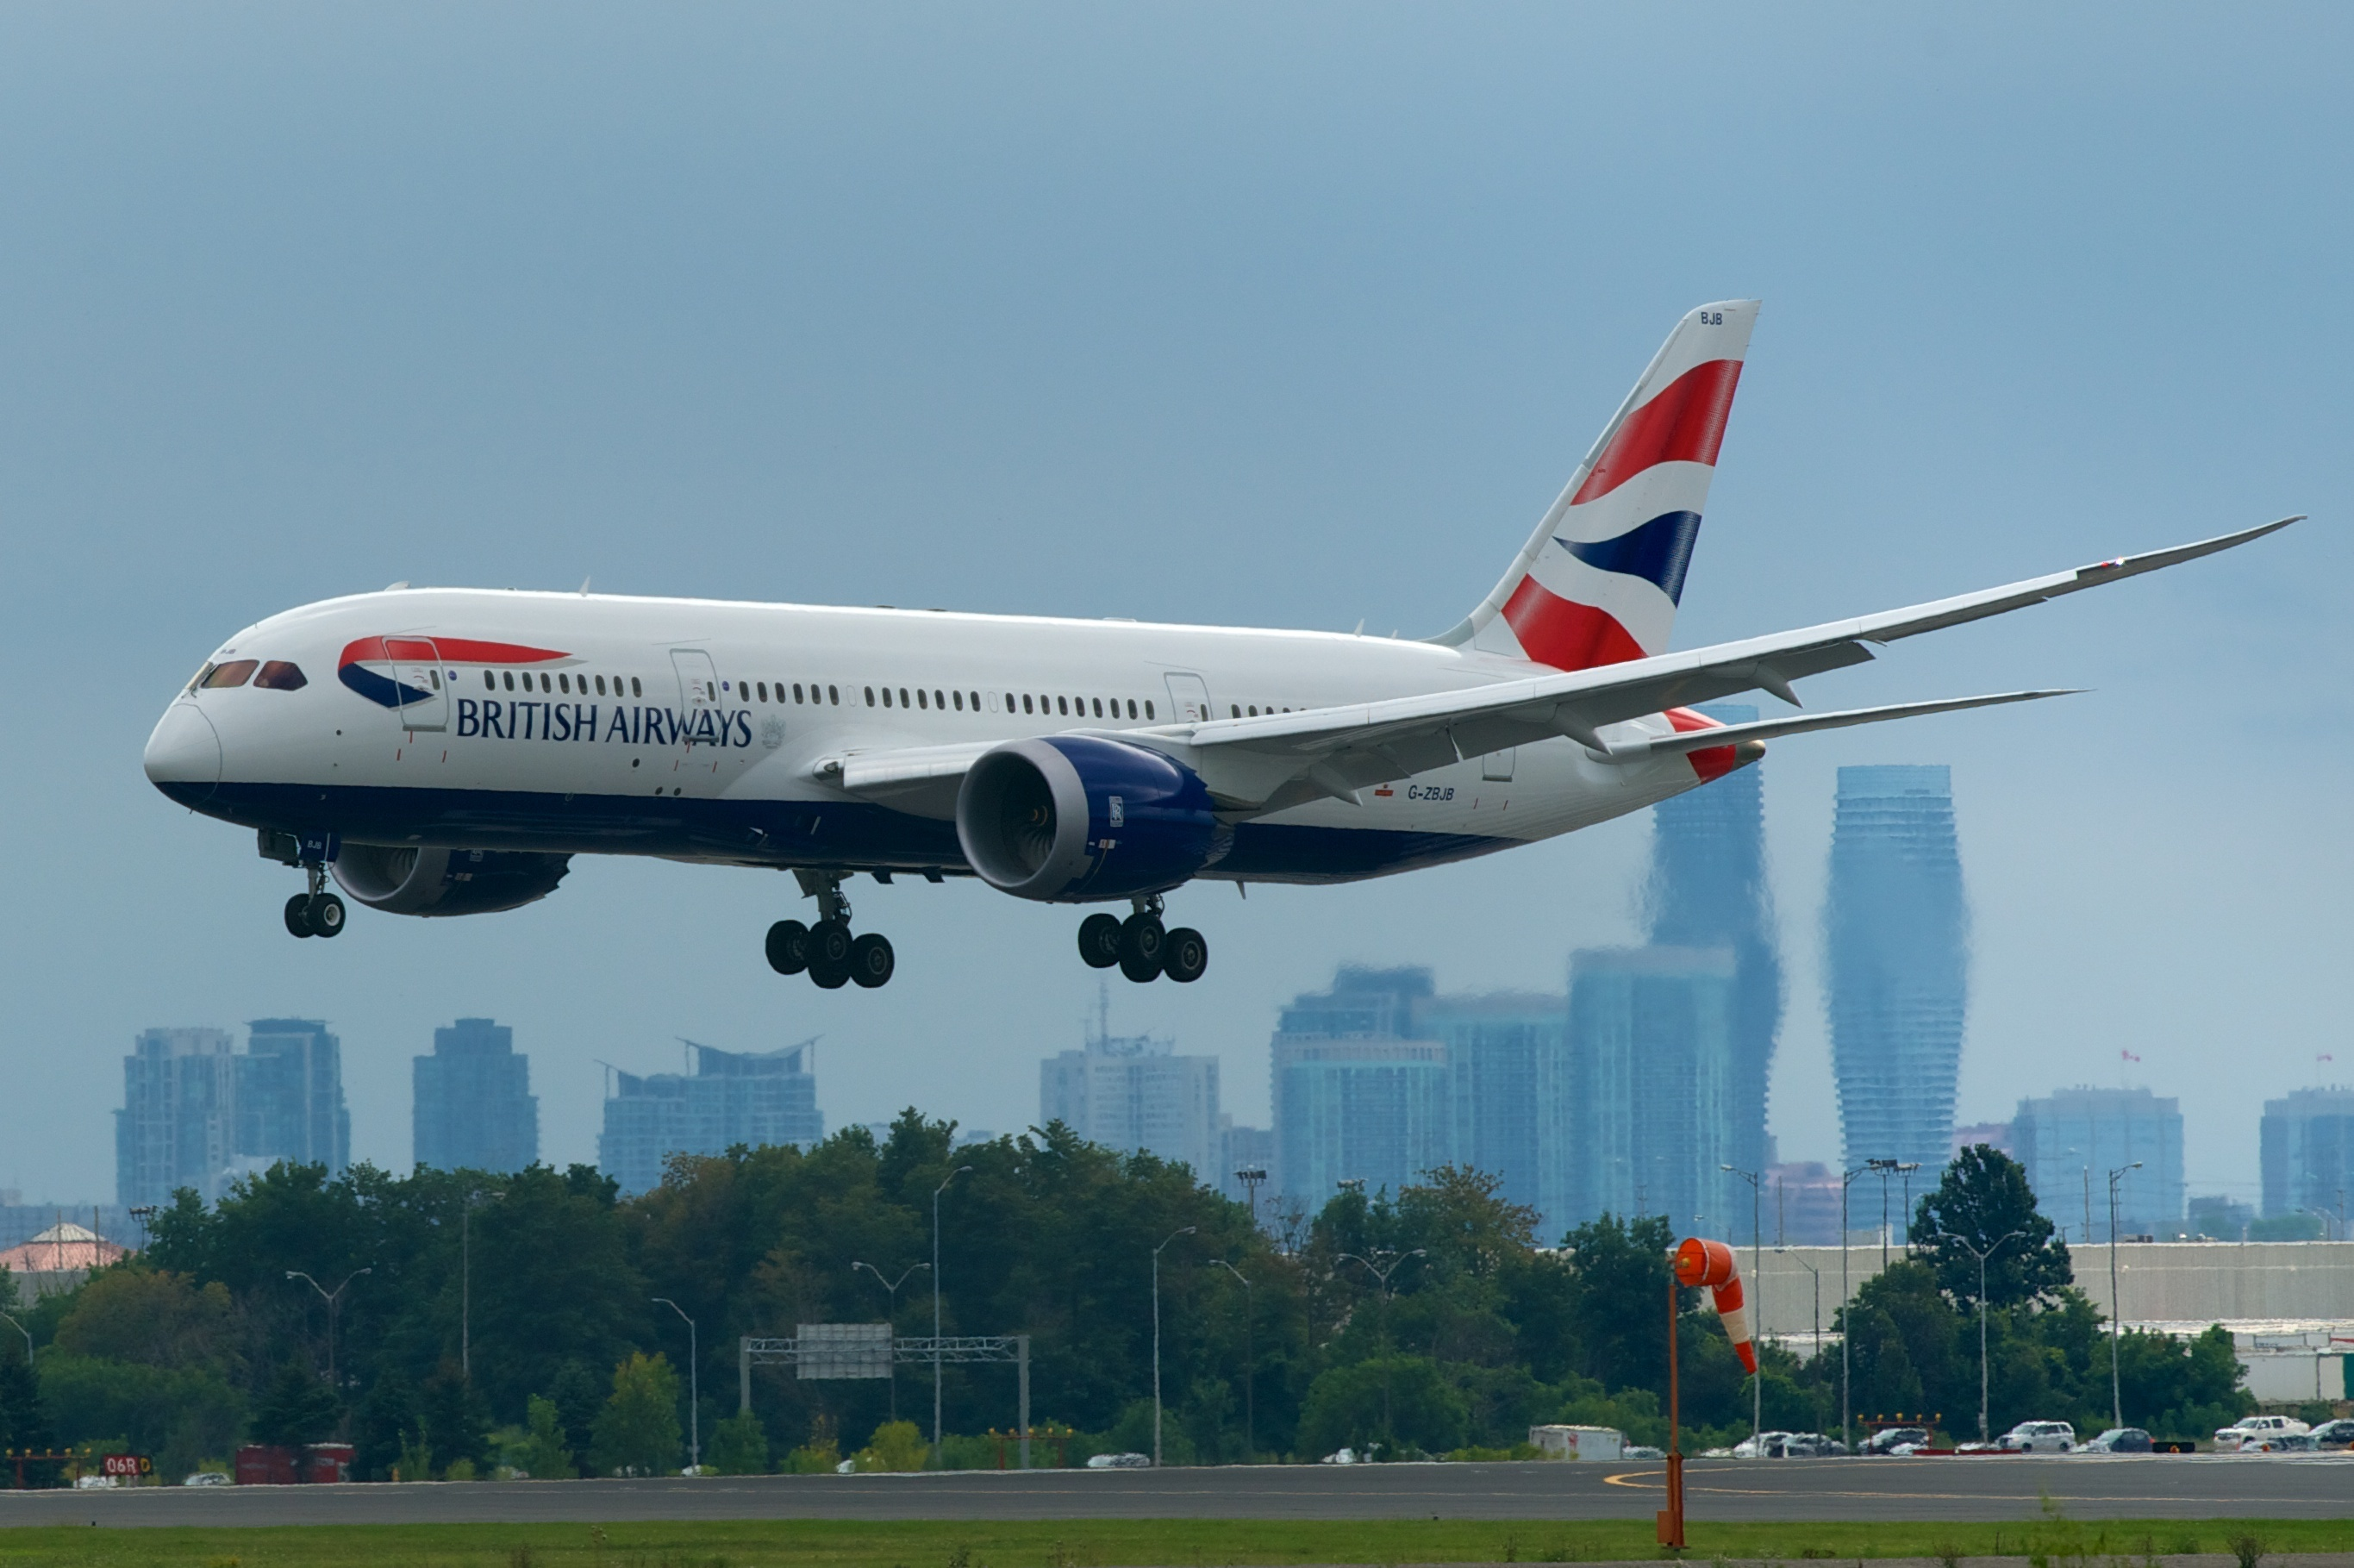 First intercontinental flight of a British Airways Boeing 787-8 about to touch down, Toronto-Pearson Airport with City Centre Mississauga looming in the background.